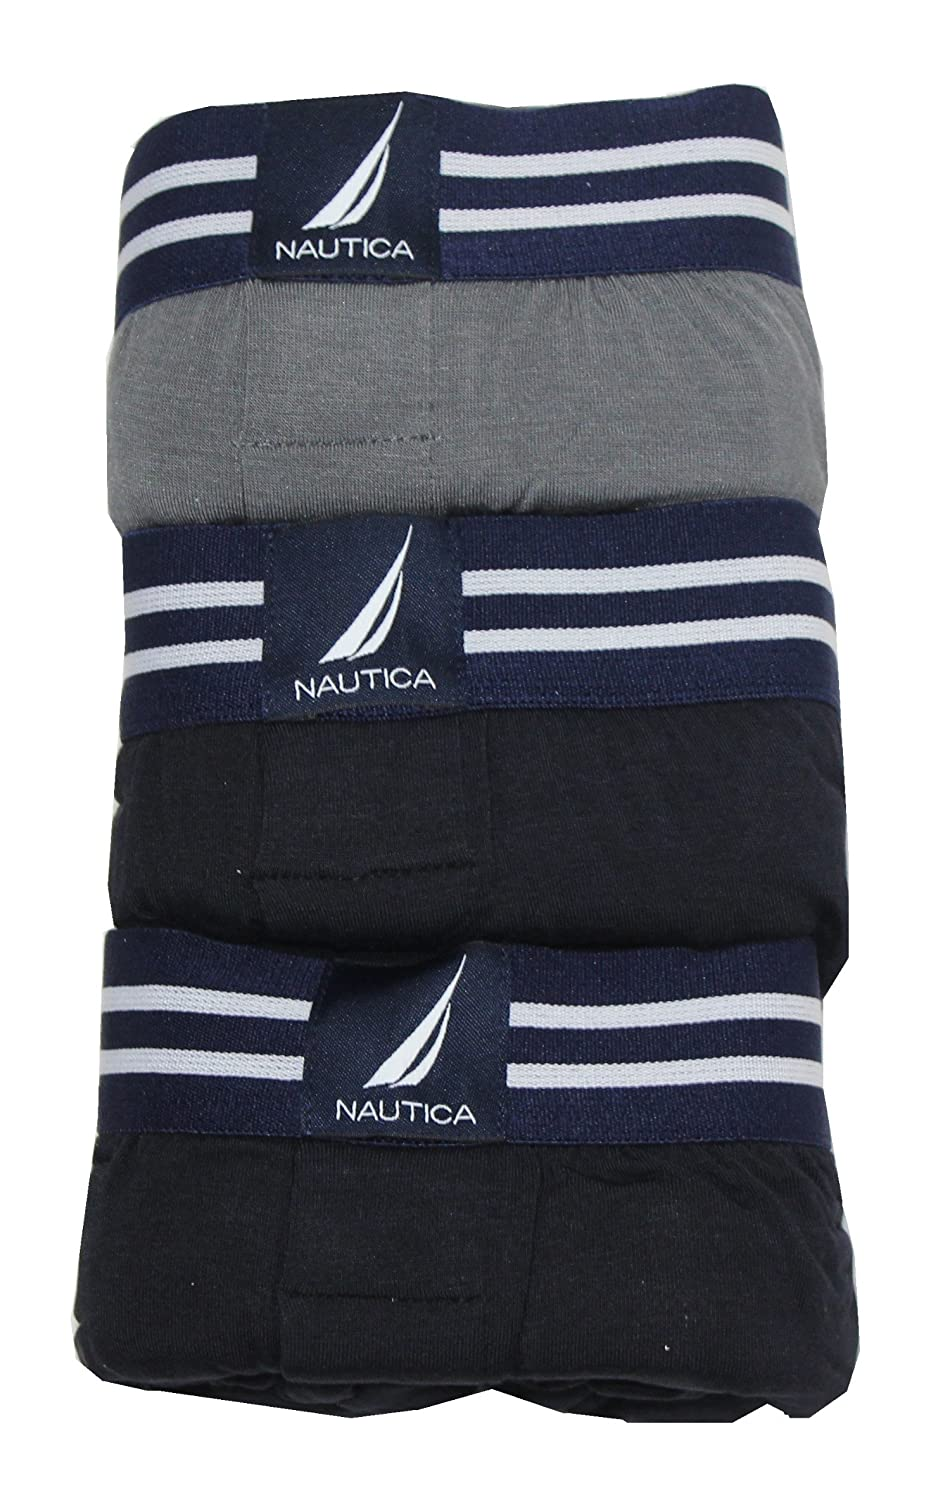 Nautica Mens Boxer Modal Cotton Fit Boxer with Functional Fly Tagless, ...